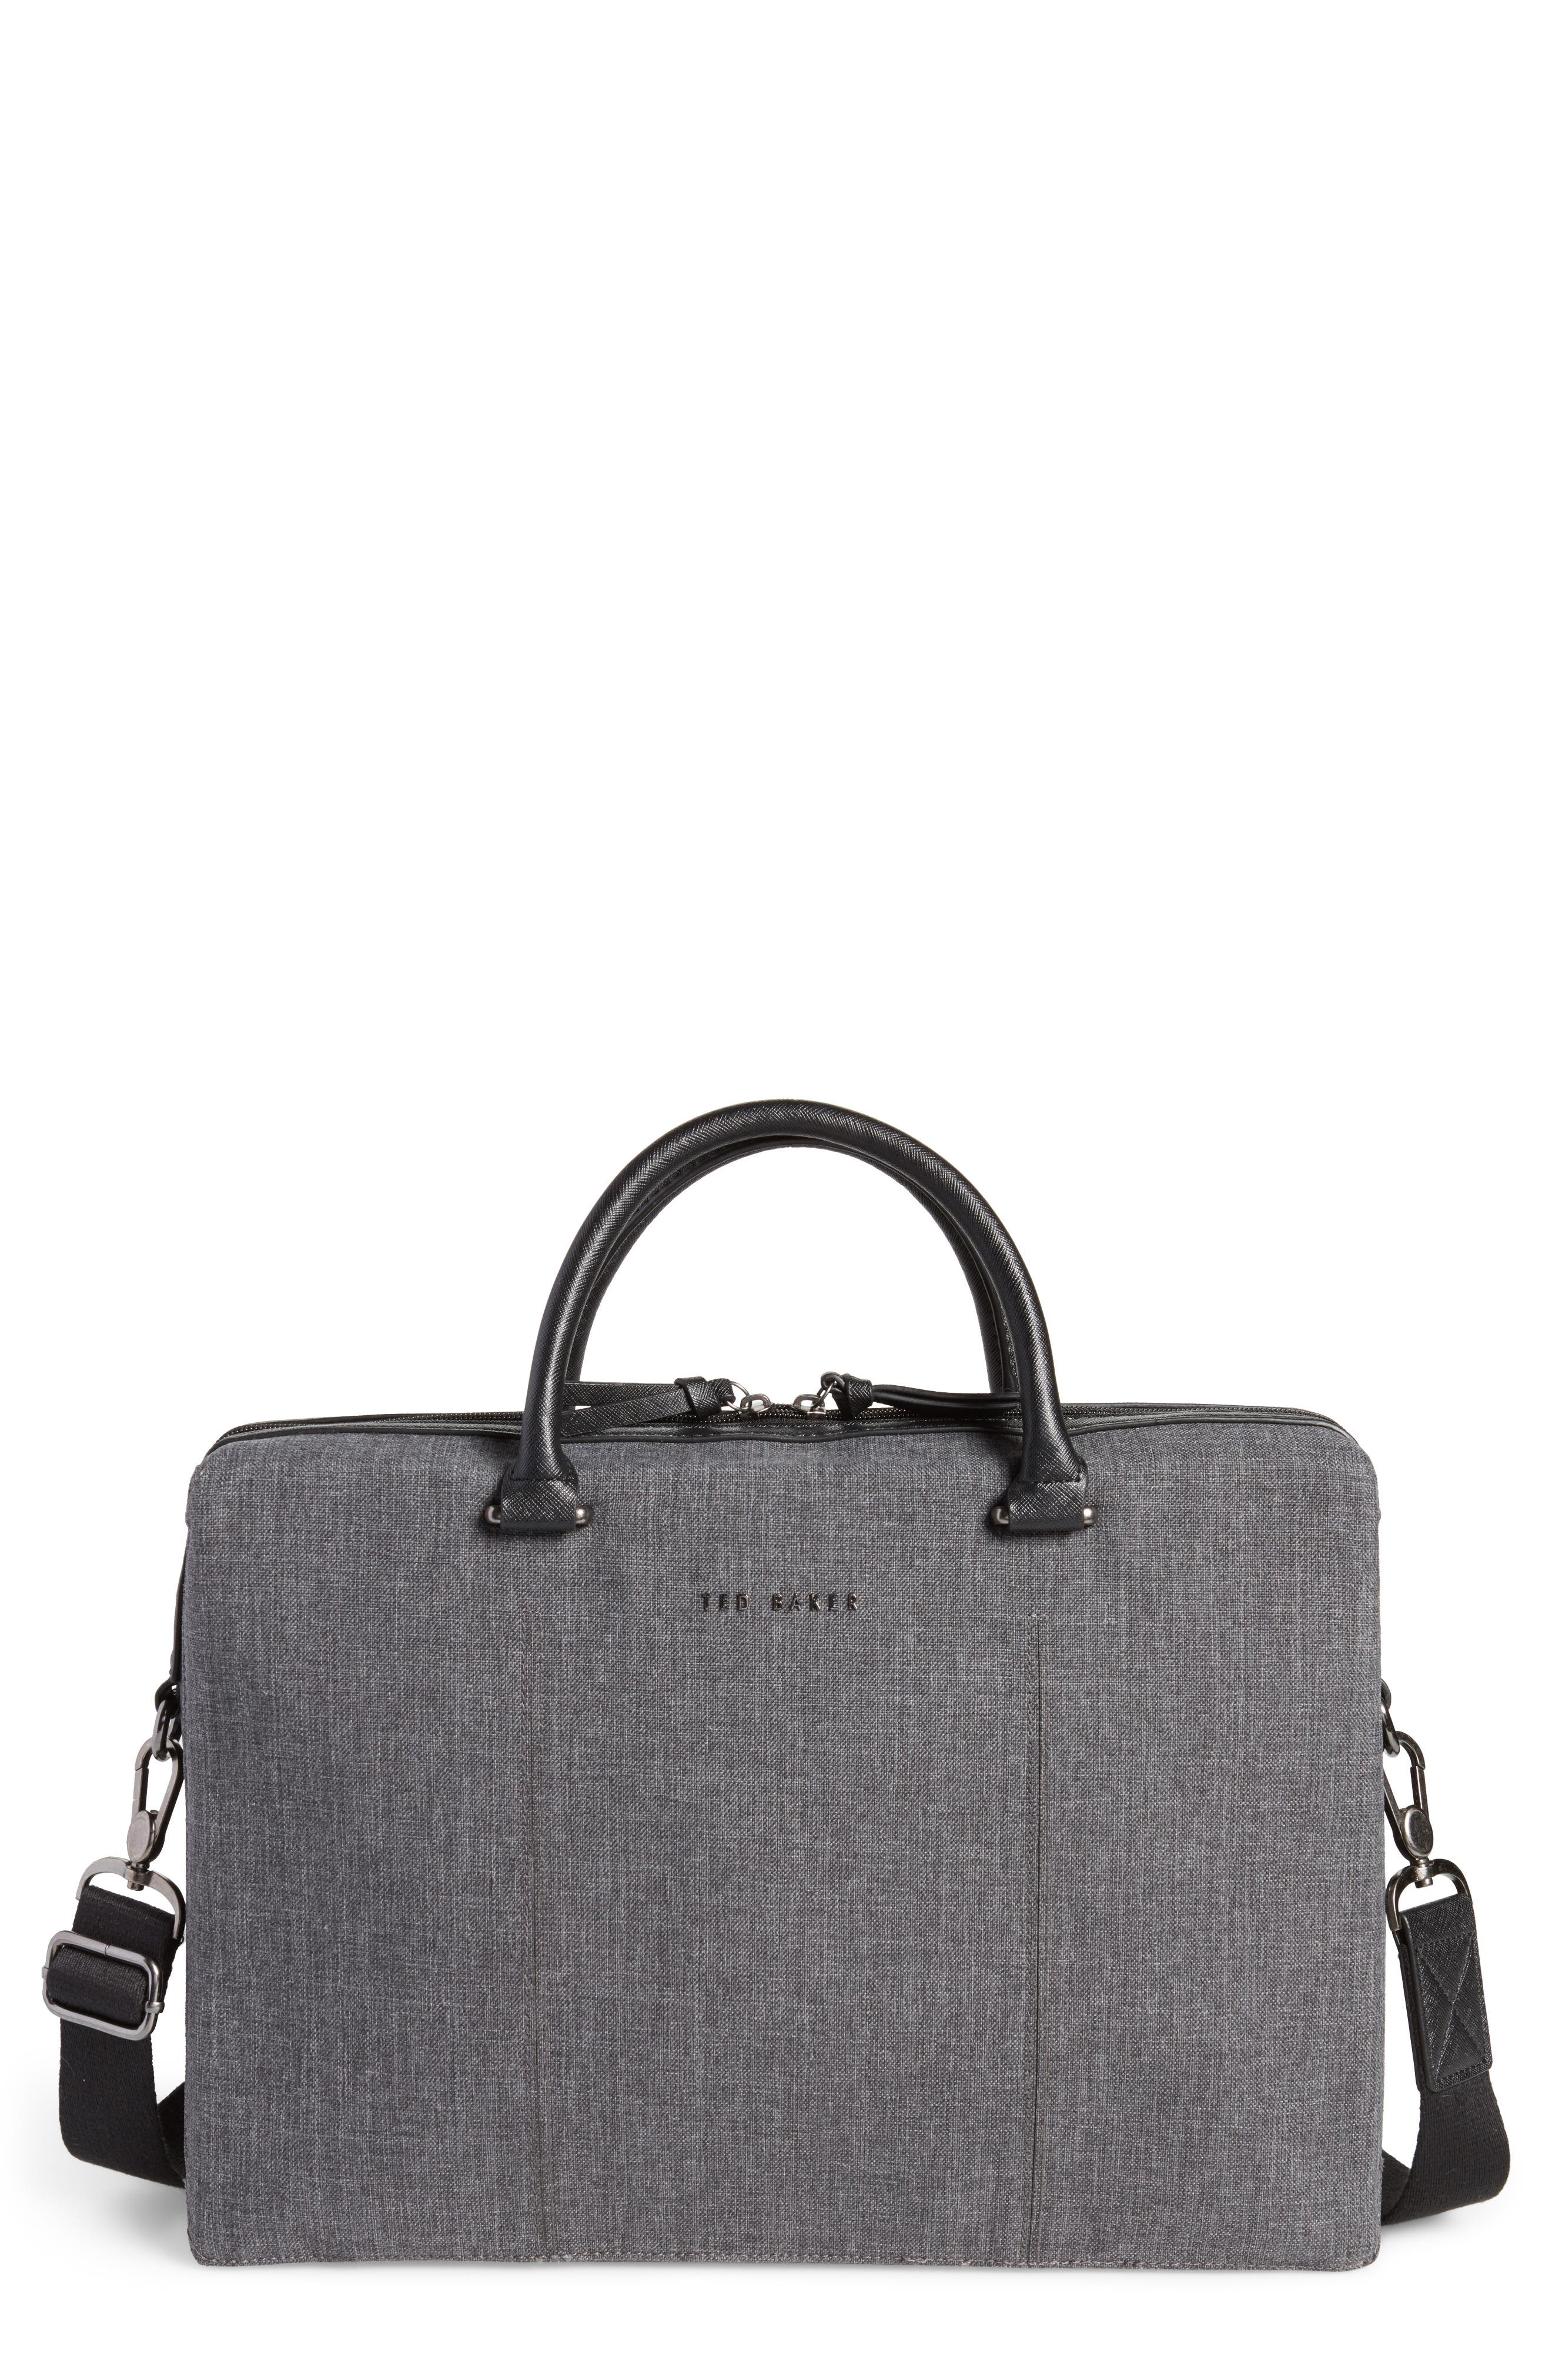 TED BAKER LONDON, Citrice Document Briefcase, Main thumbnail 1, color, 010